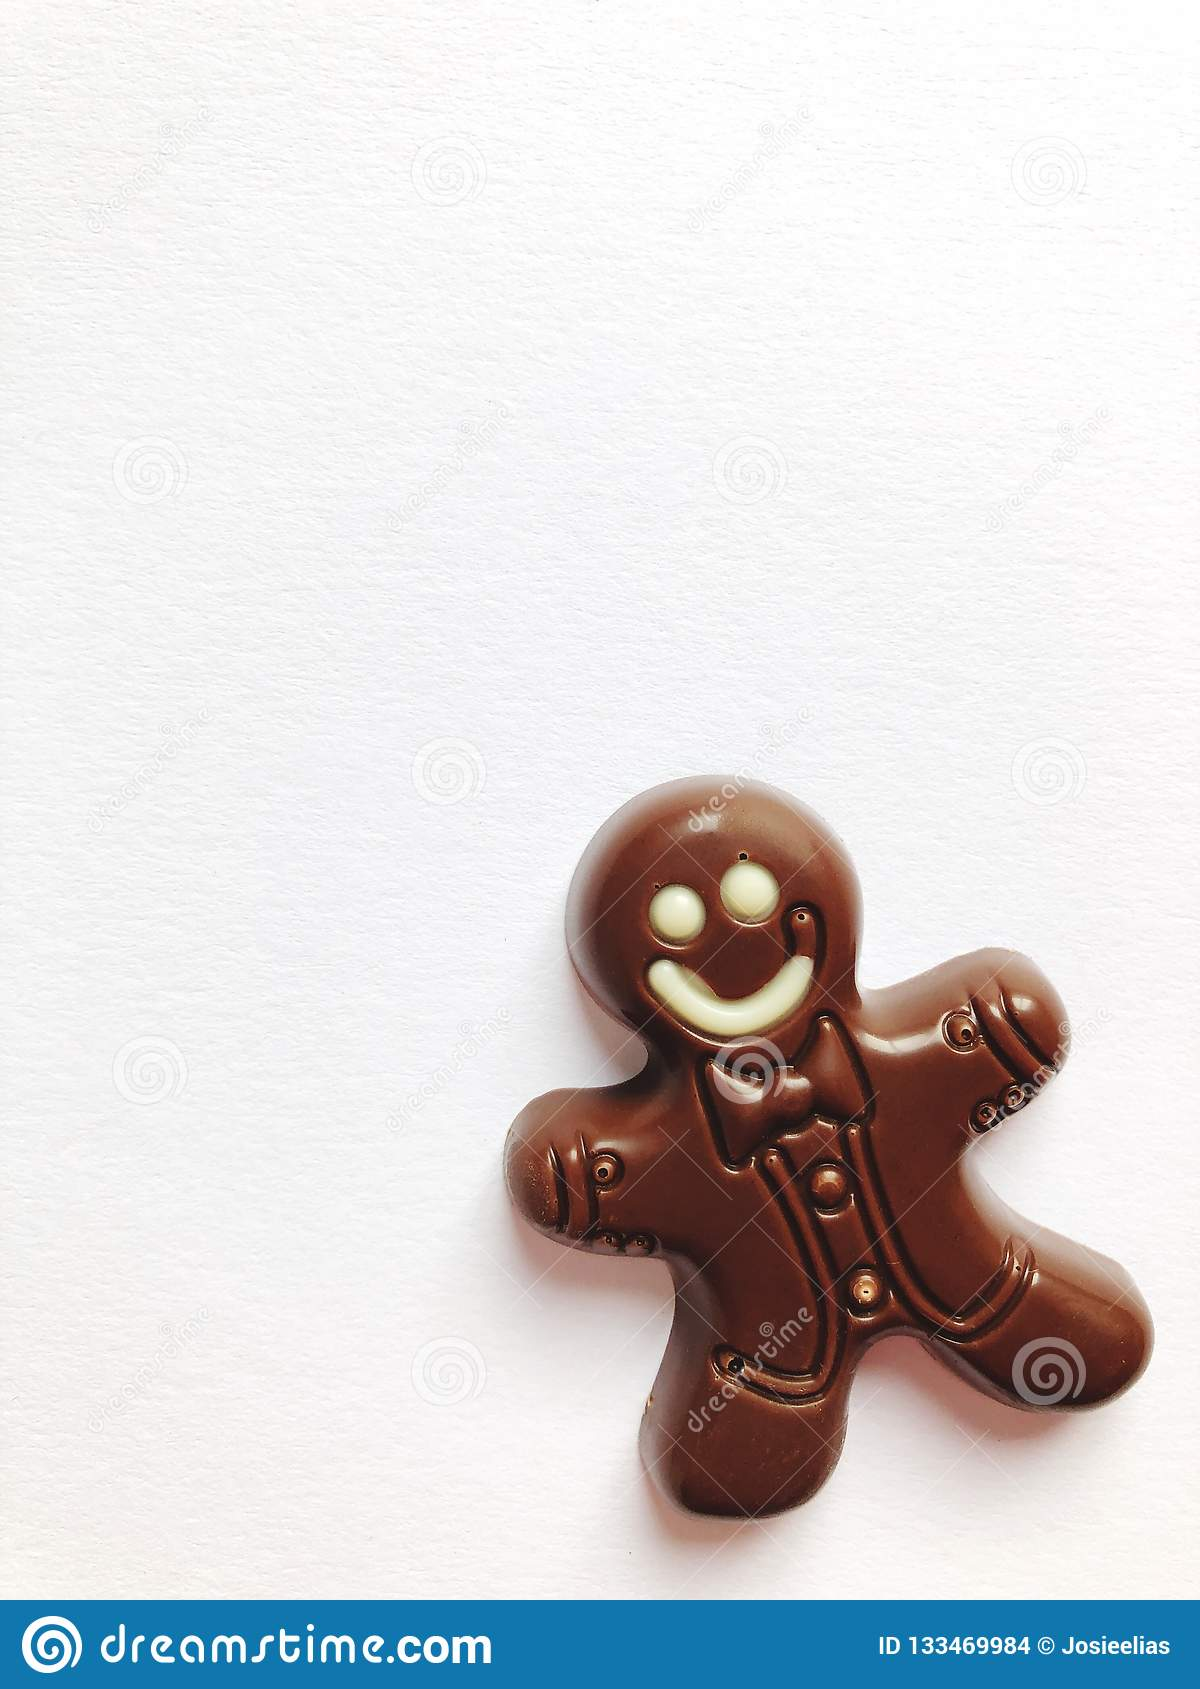 Chocolate Gingerbread Man Stock Photo Image Of Shapes 133469984